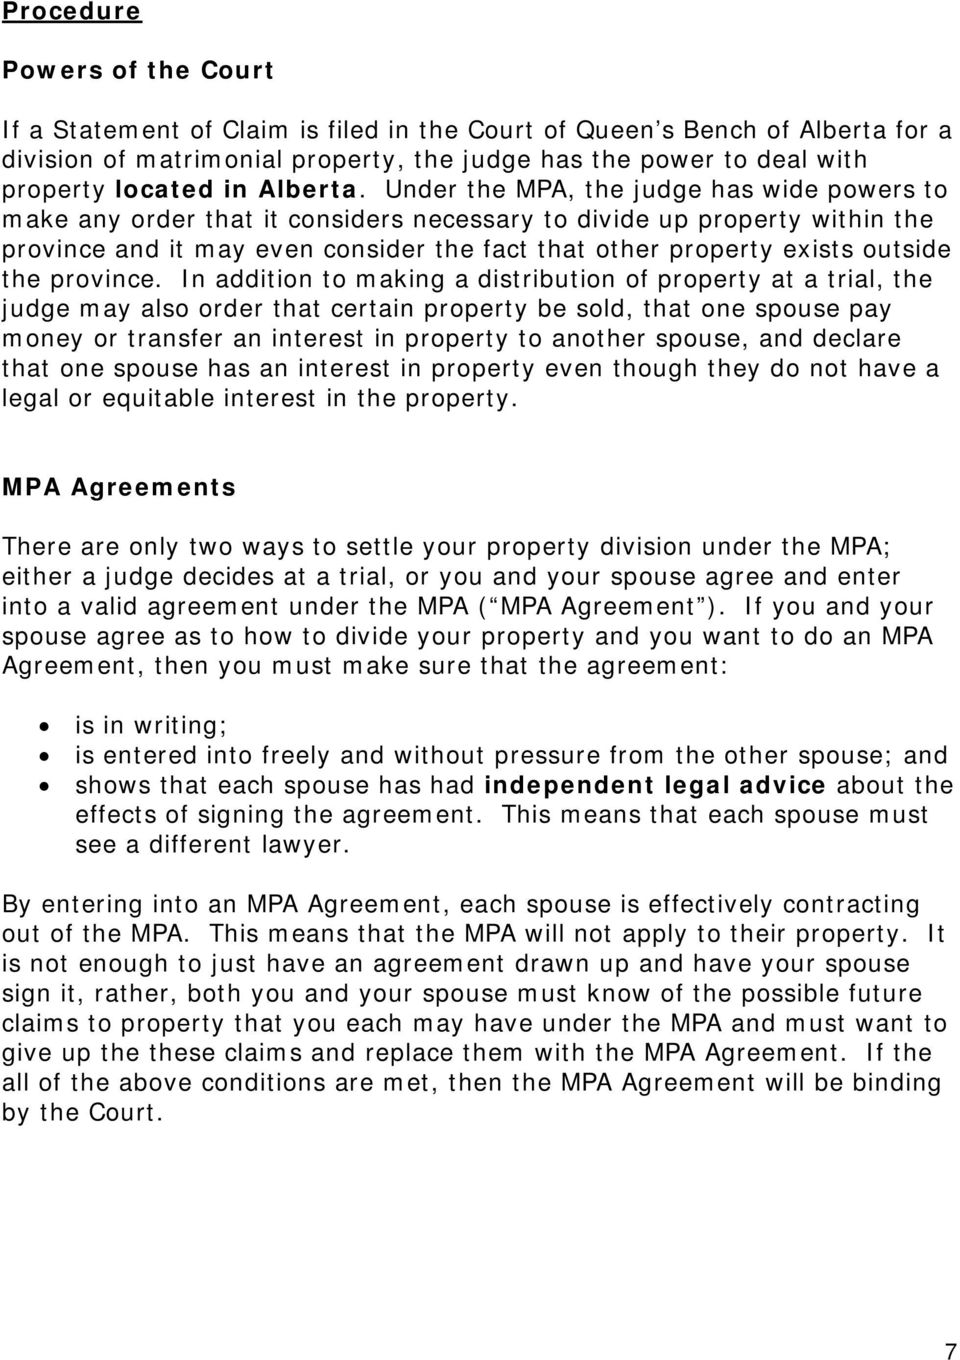 Under the MPA, the judge has wide powers to make any order that it considers necessary to divide up property within the province and it may even consider the fact that other property exists outside